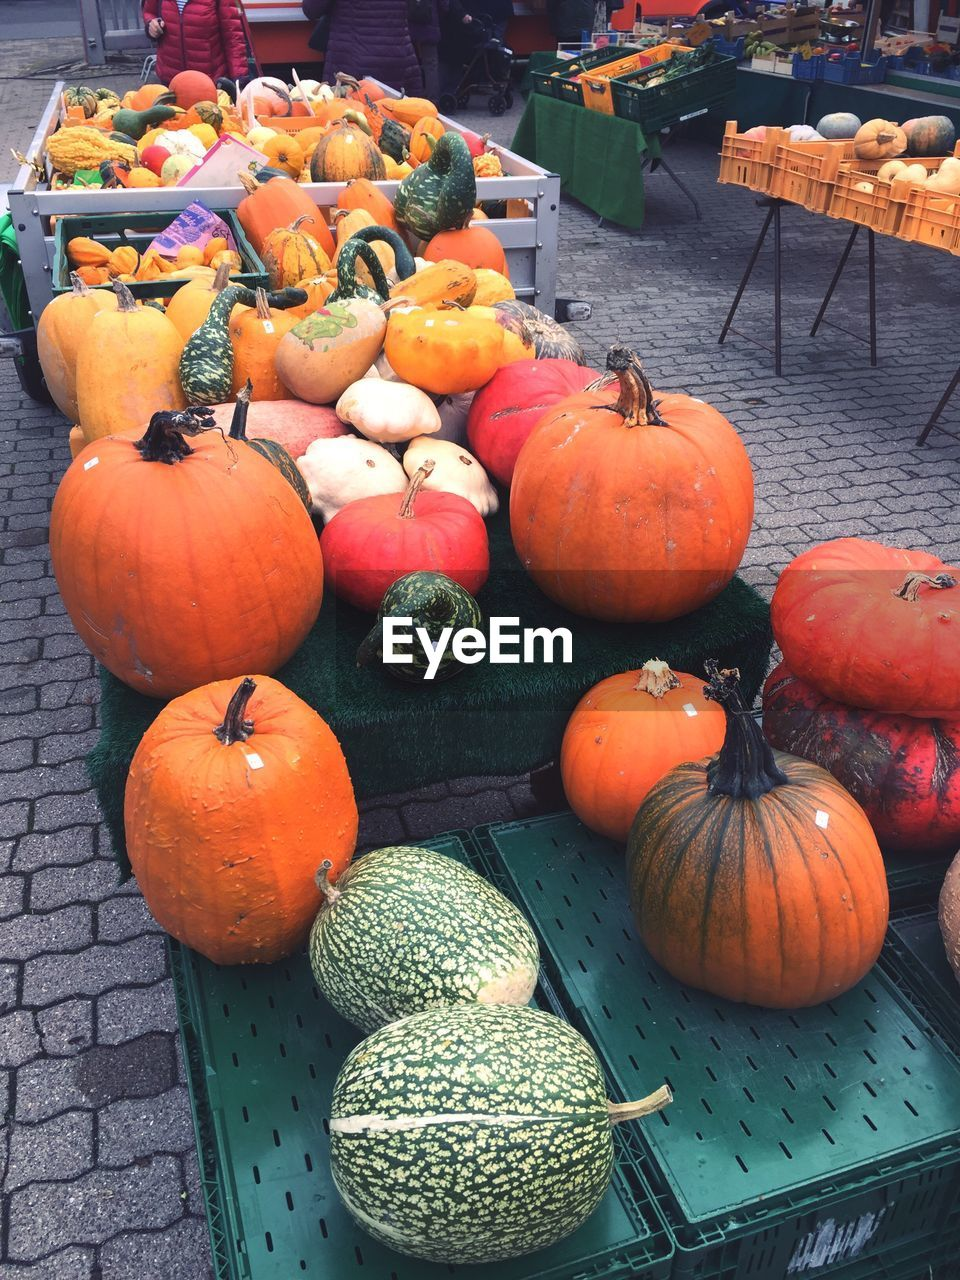 pumpkin, vegetable, food and drink, halloween, food, orange color, for sale, no people, day, healthy eating, market, retail, table, squash - vegetable, choice, outdoors, freshness, gourd, jack o lantern, close-up